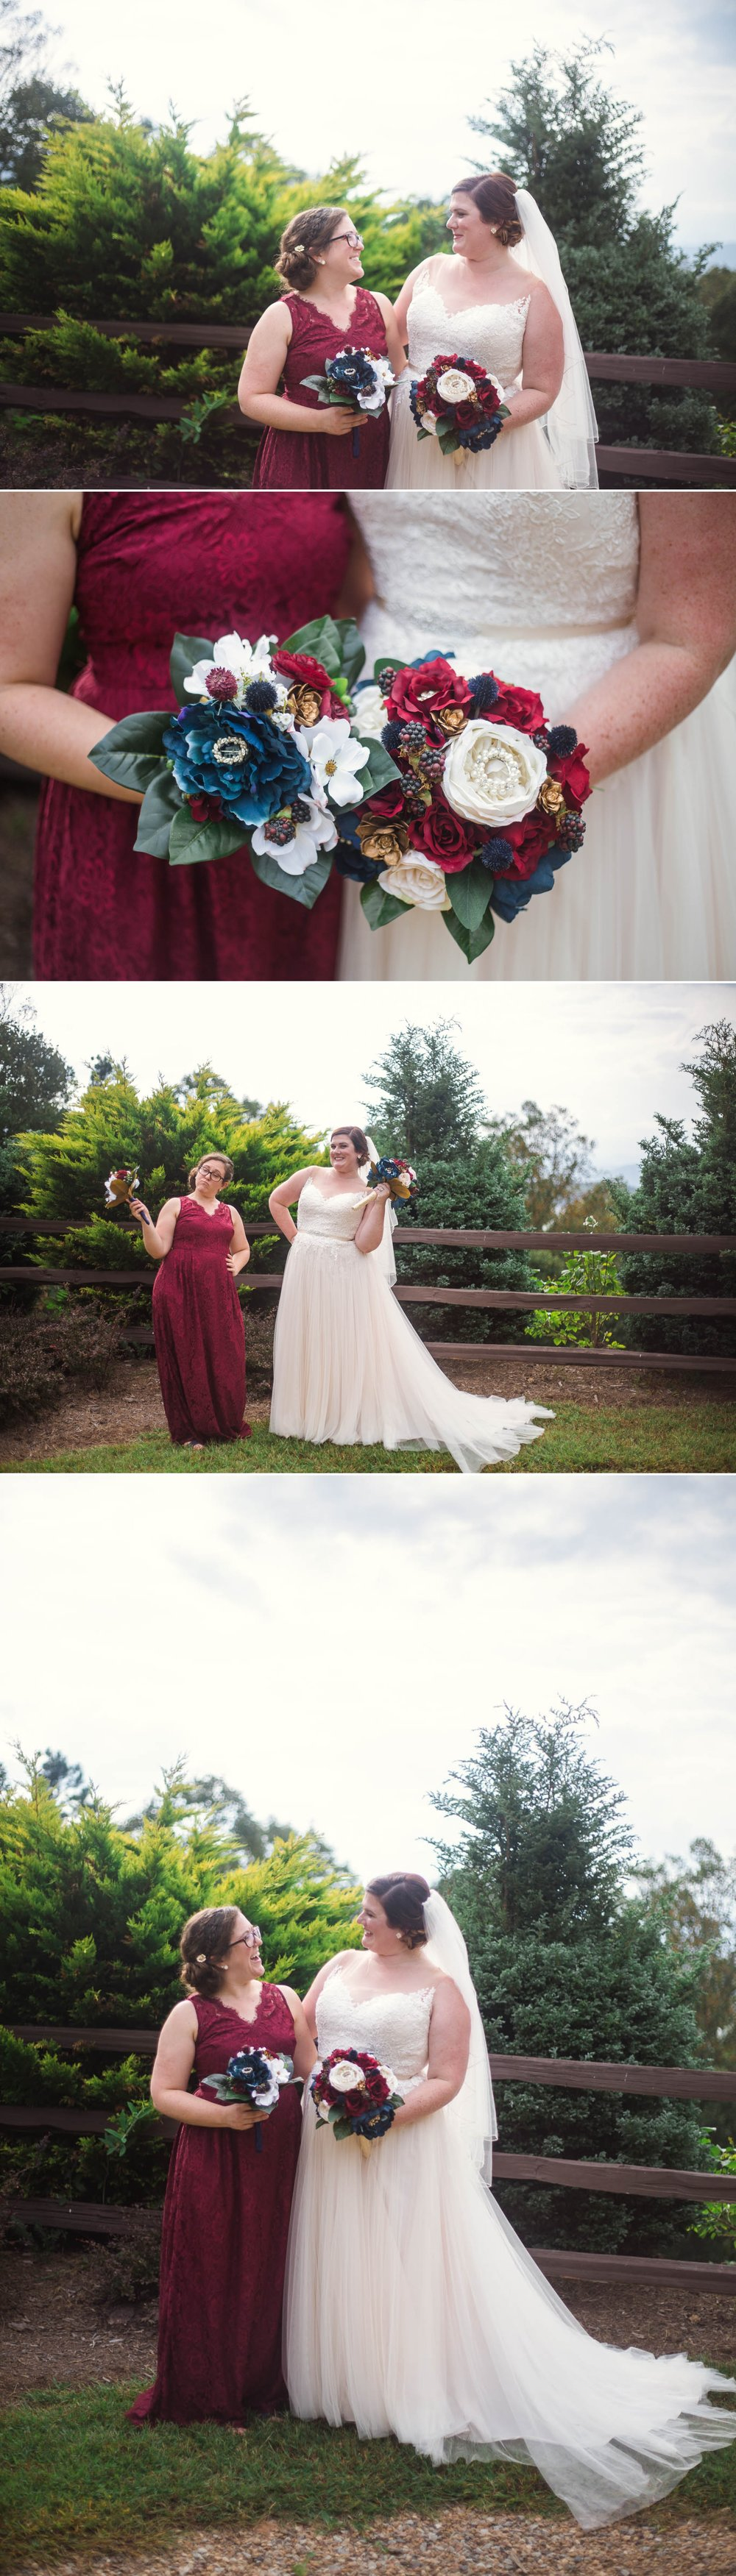 Portraits of the Bride and her Bridesmaid - Meredith + Jason - The Crest Center and Pavilion in Asheville, NC - Raleigh Wedding Photographer